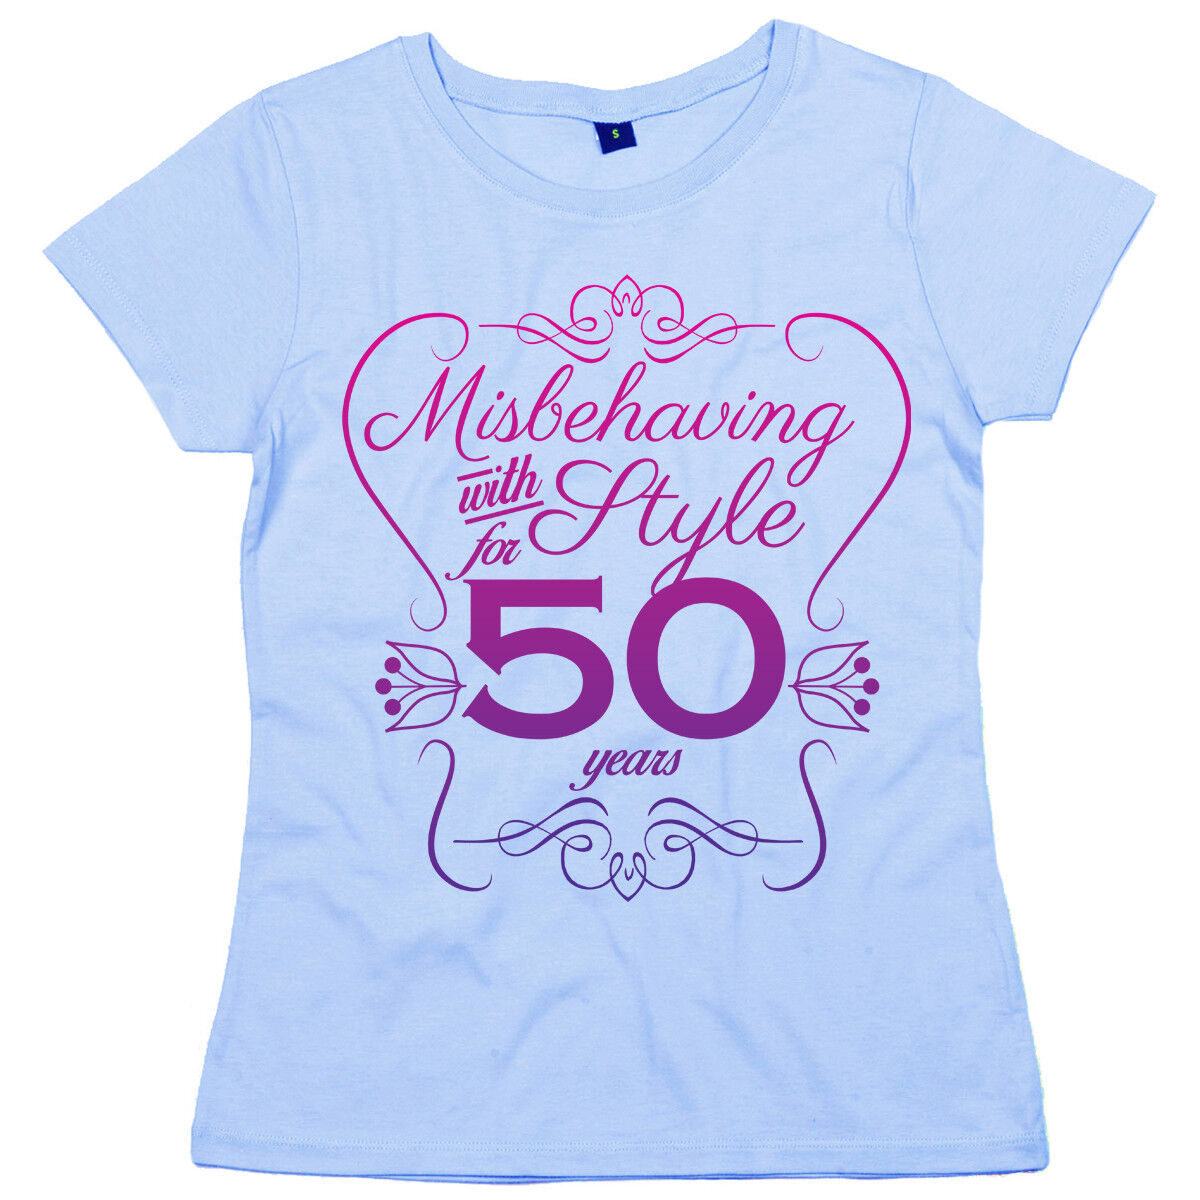 Details About 50th Birthday T Shirt Misbehaving With Style For 50 Years Womens Ladies